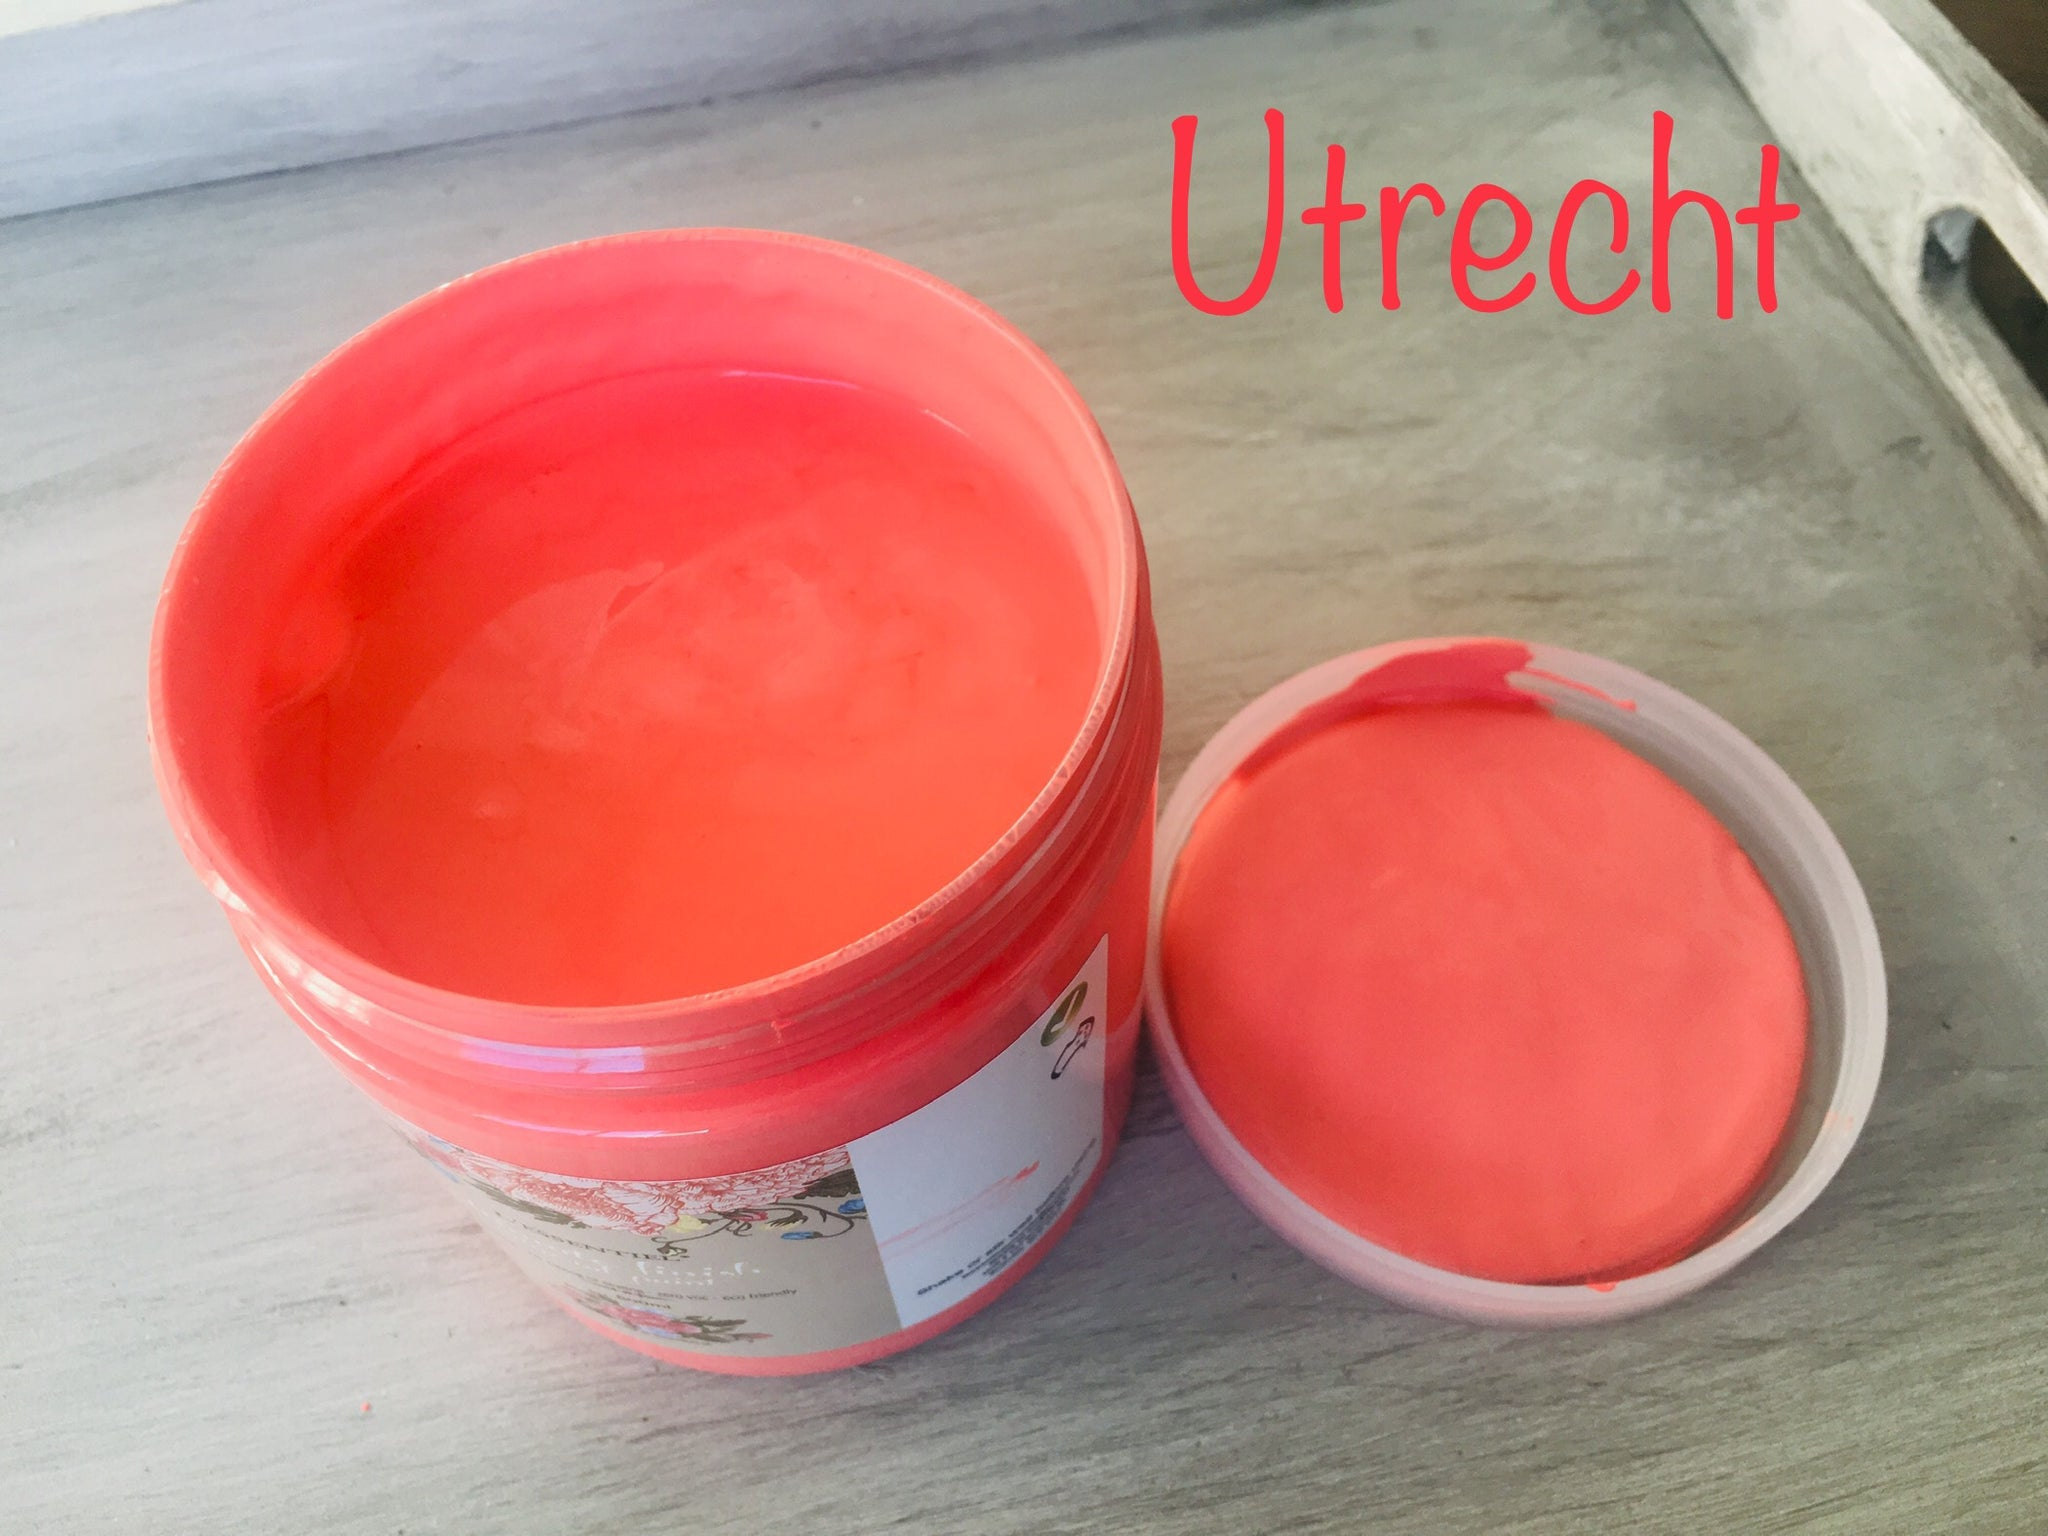 Utrecht - limited edition